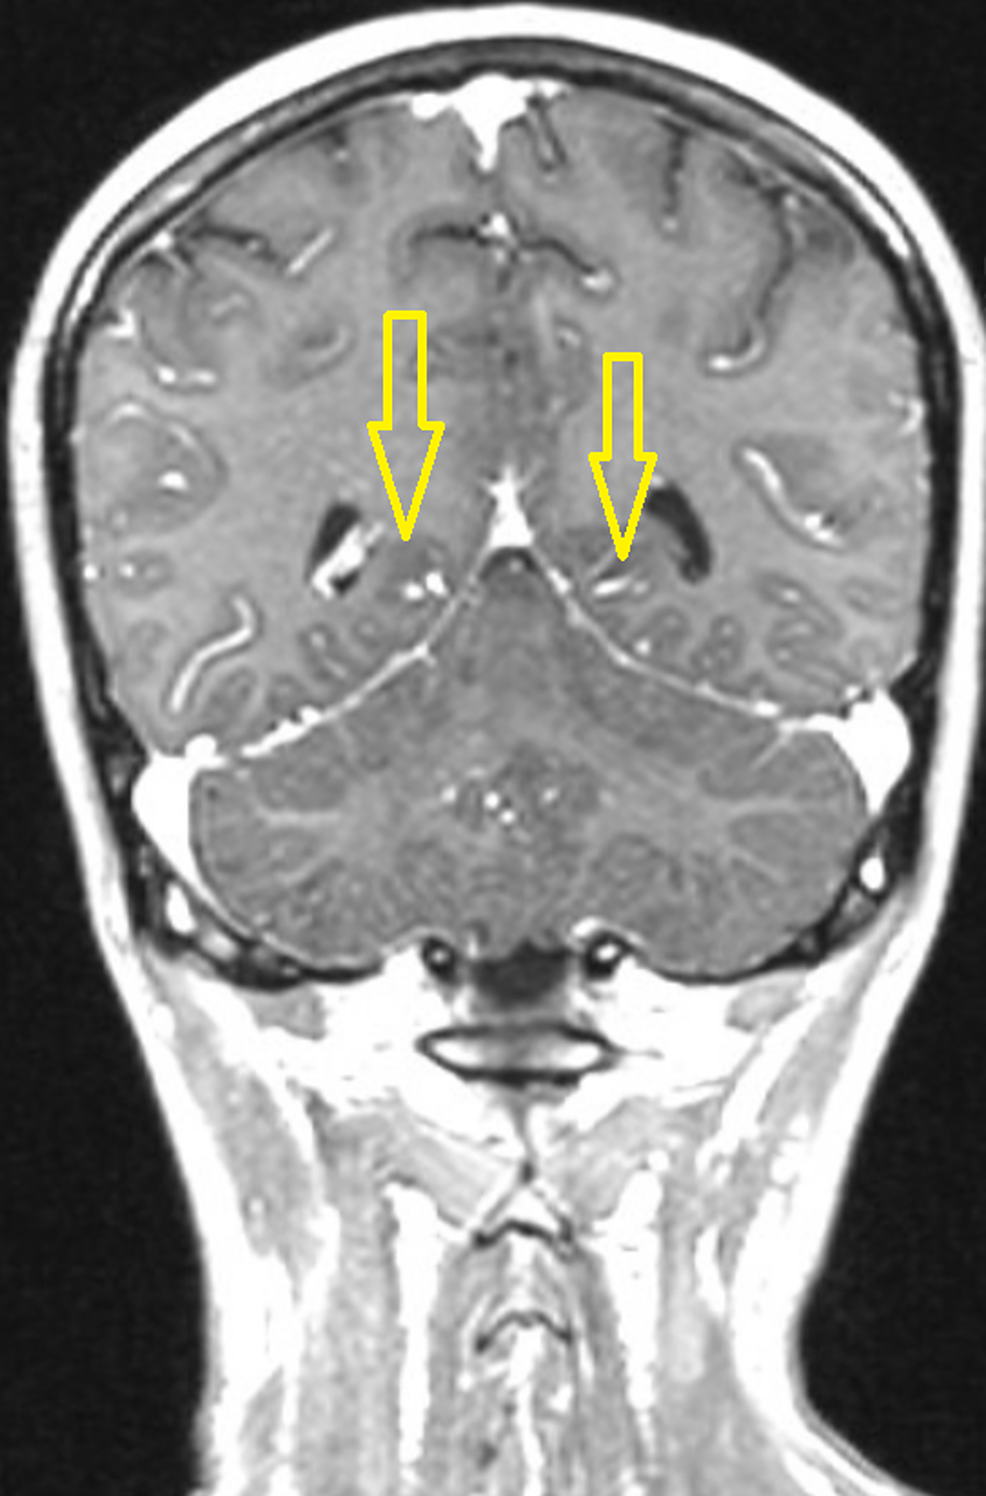 The-coronal-post-contrast-T1-weighted-brain-MRI-image-demonstrates-leptomeningeal-enhancement-(yellow-arrows).